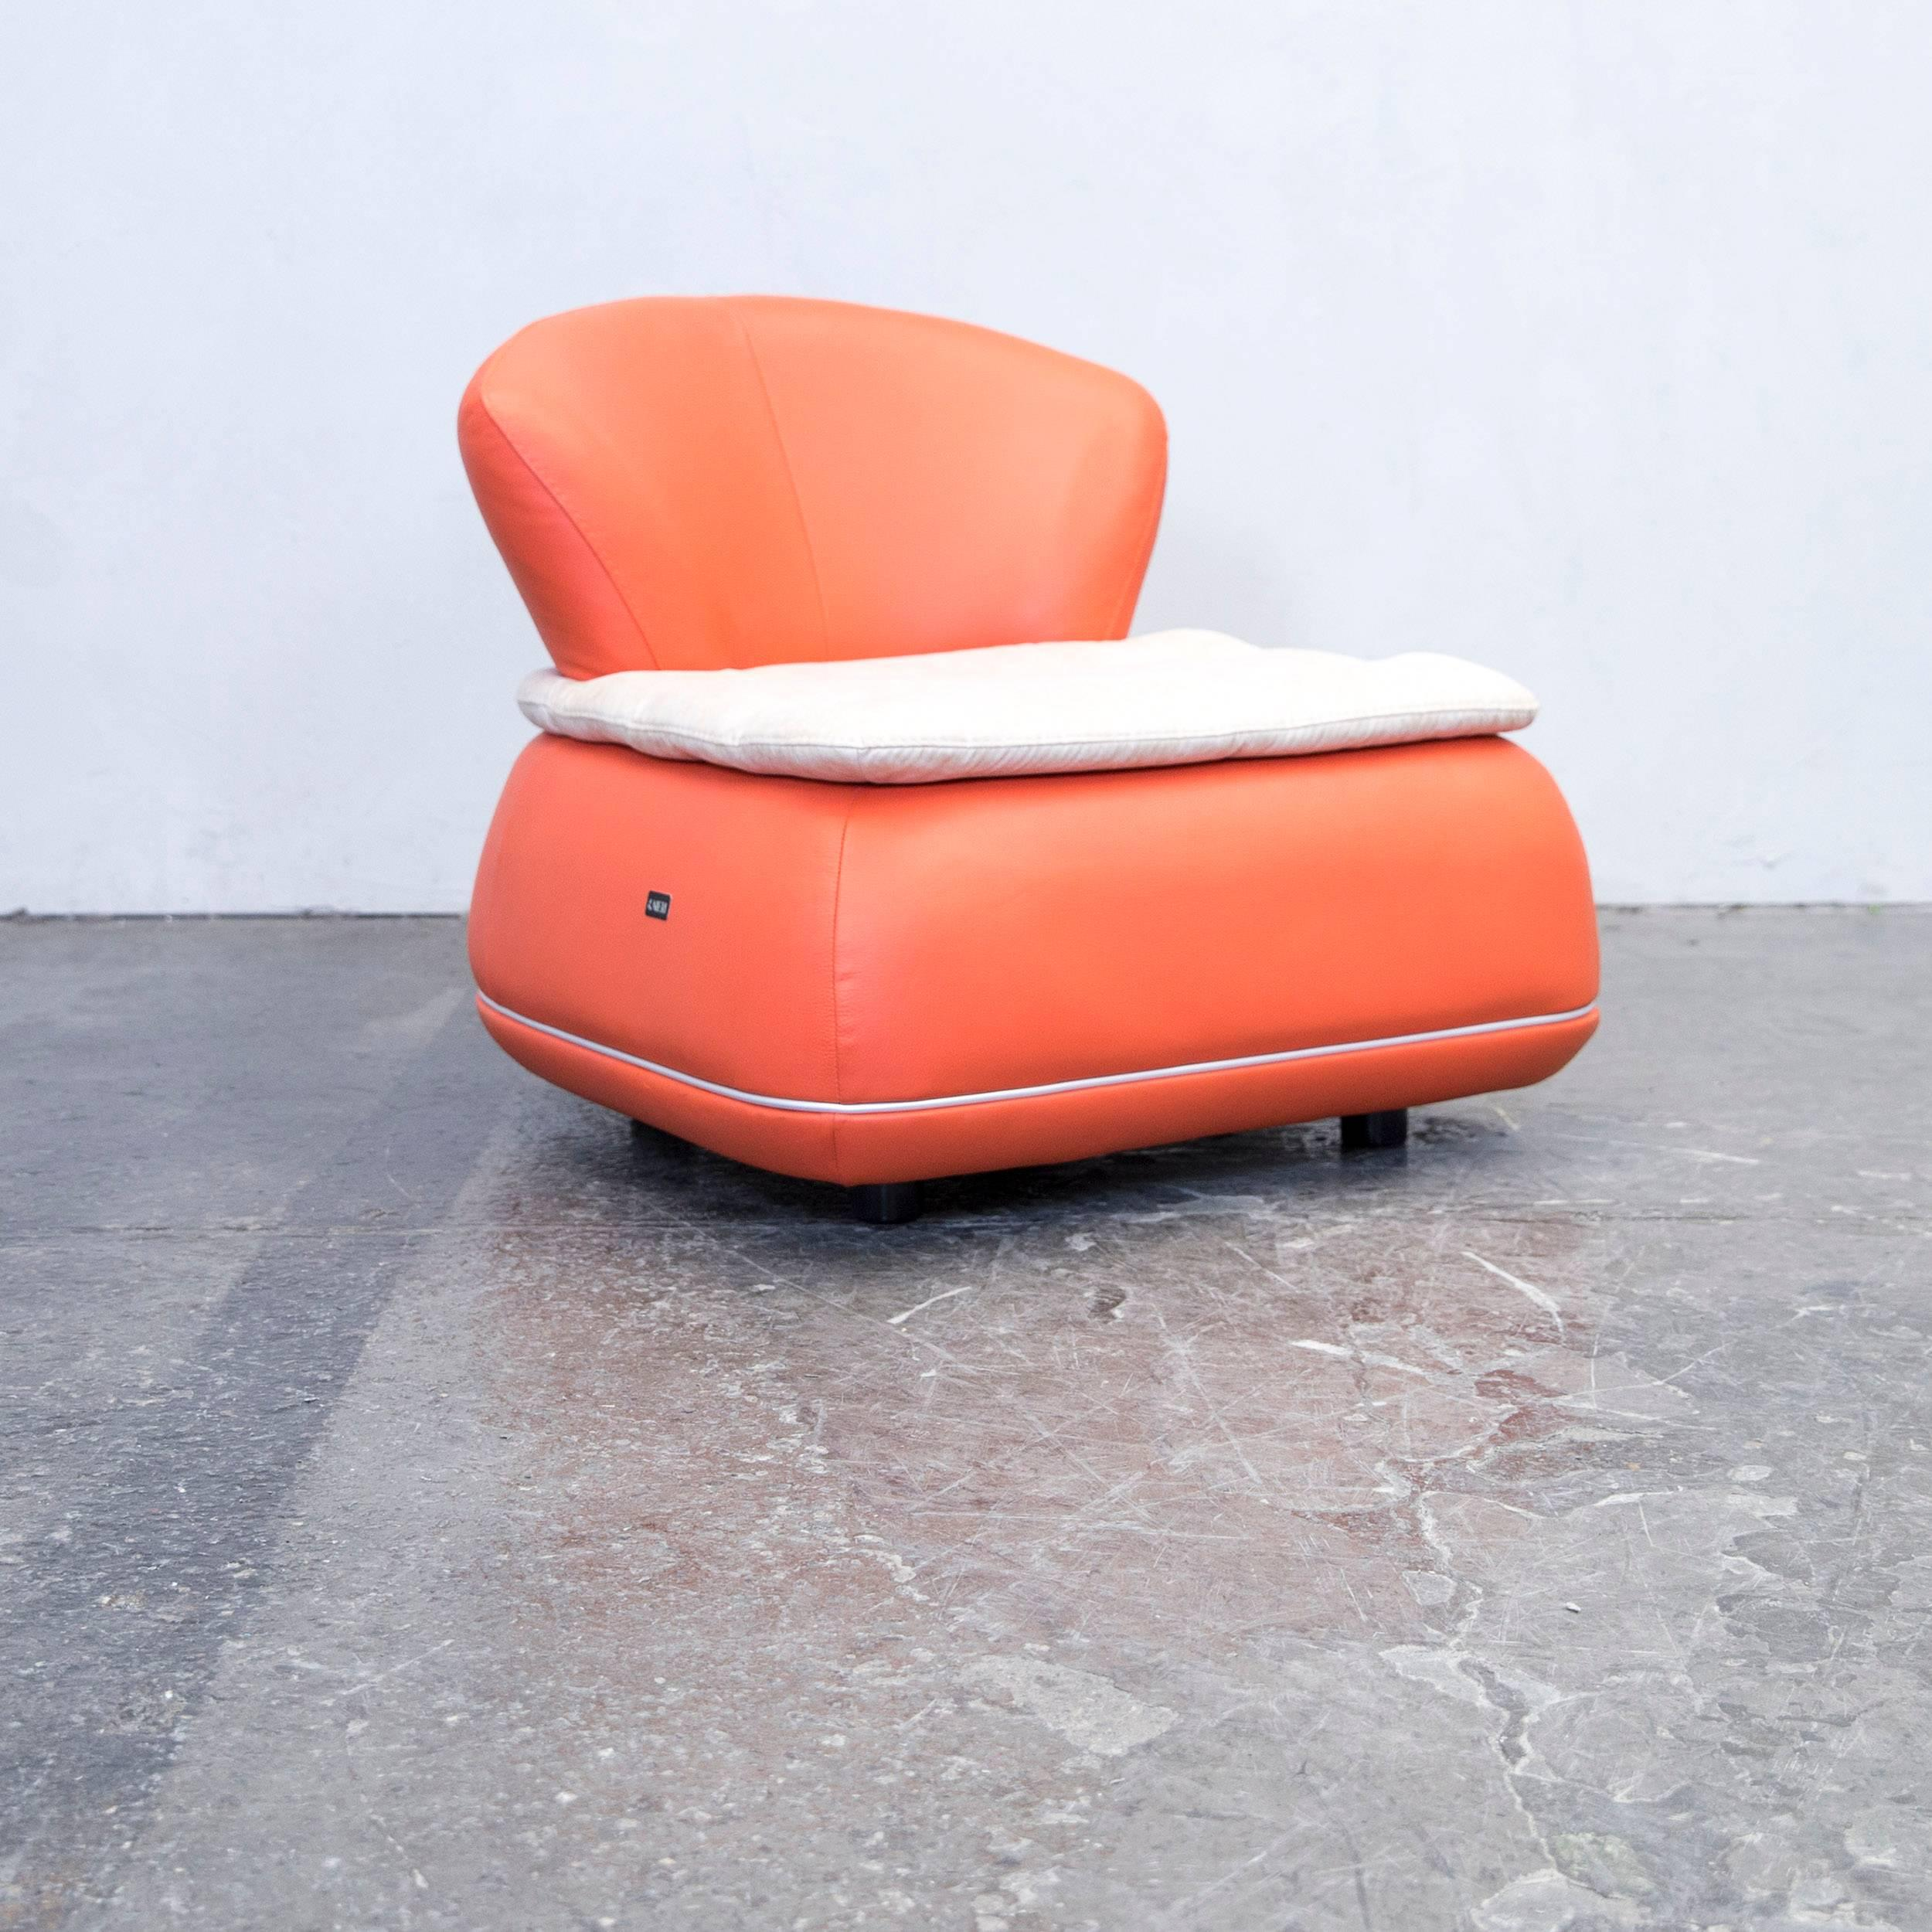 Designer Sessel Orange Couch Sessel Leder Free With Couch Sessel Leder Free Sessel